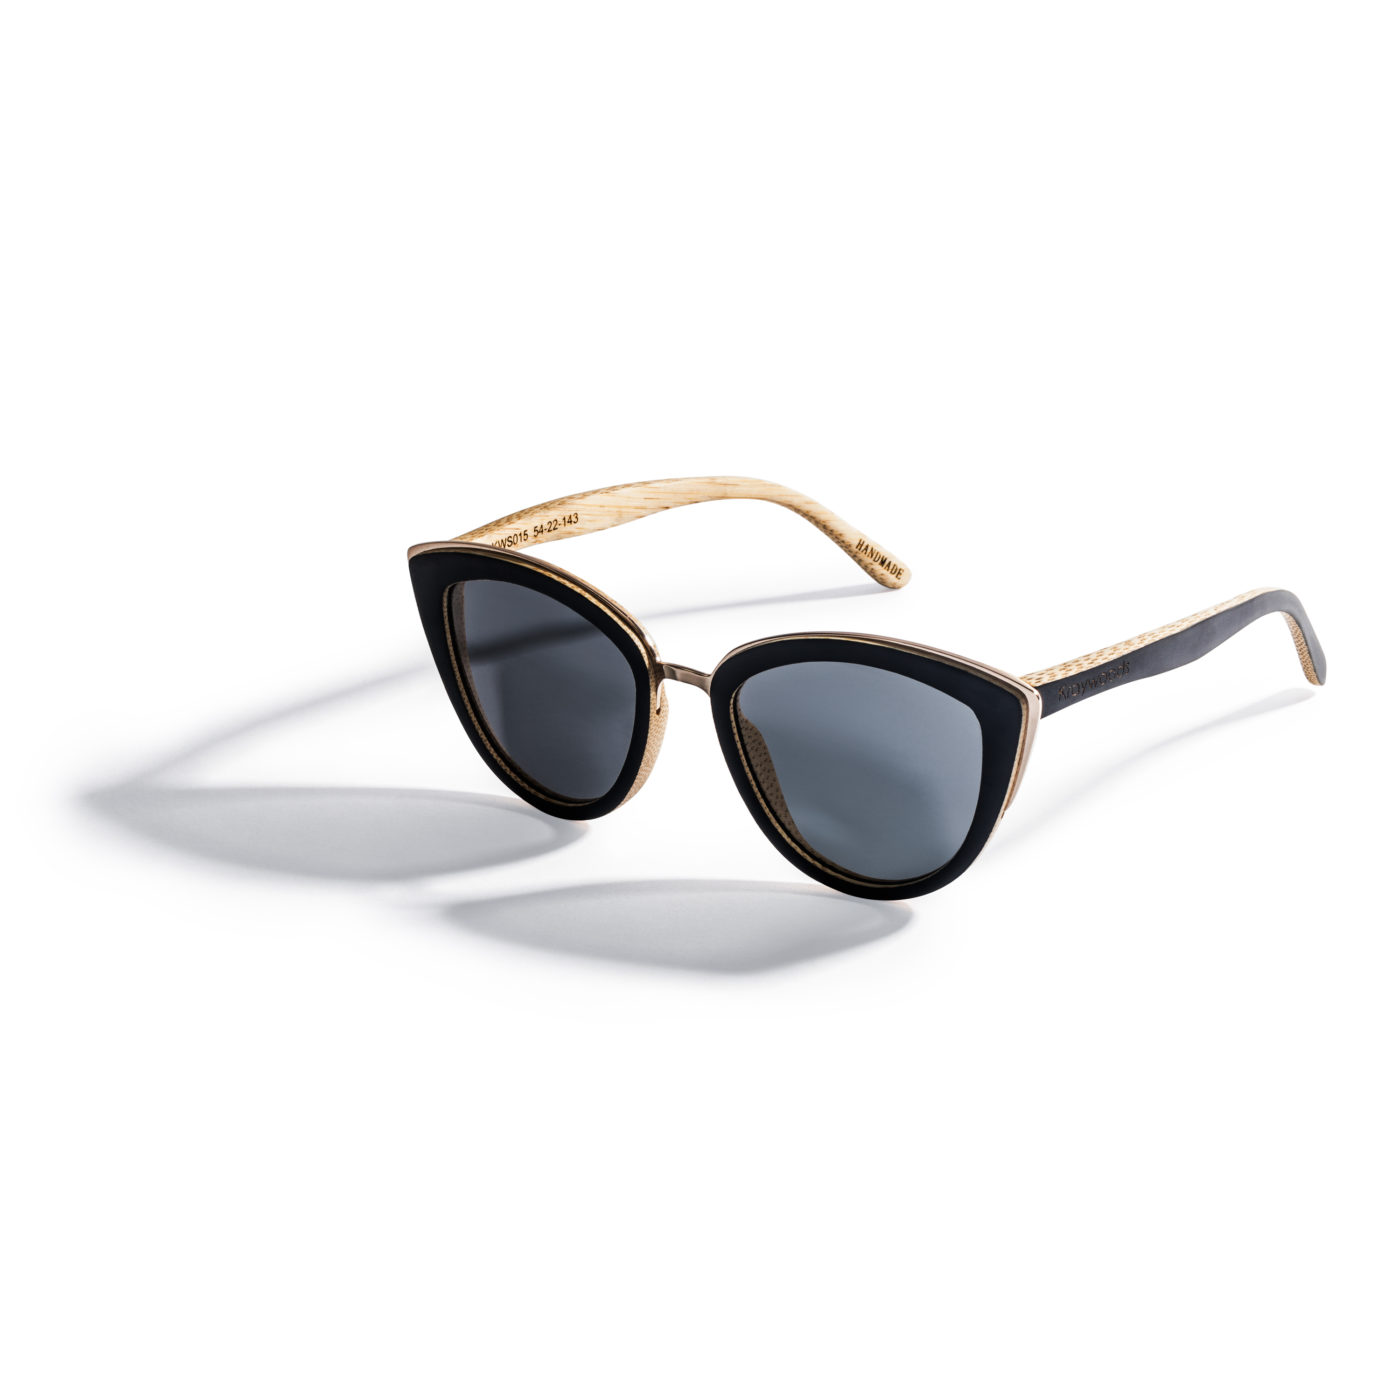 Kraywoods women cat eye bamboo sunglasses made with polarized lenses